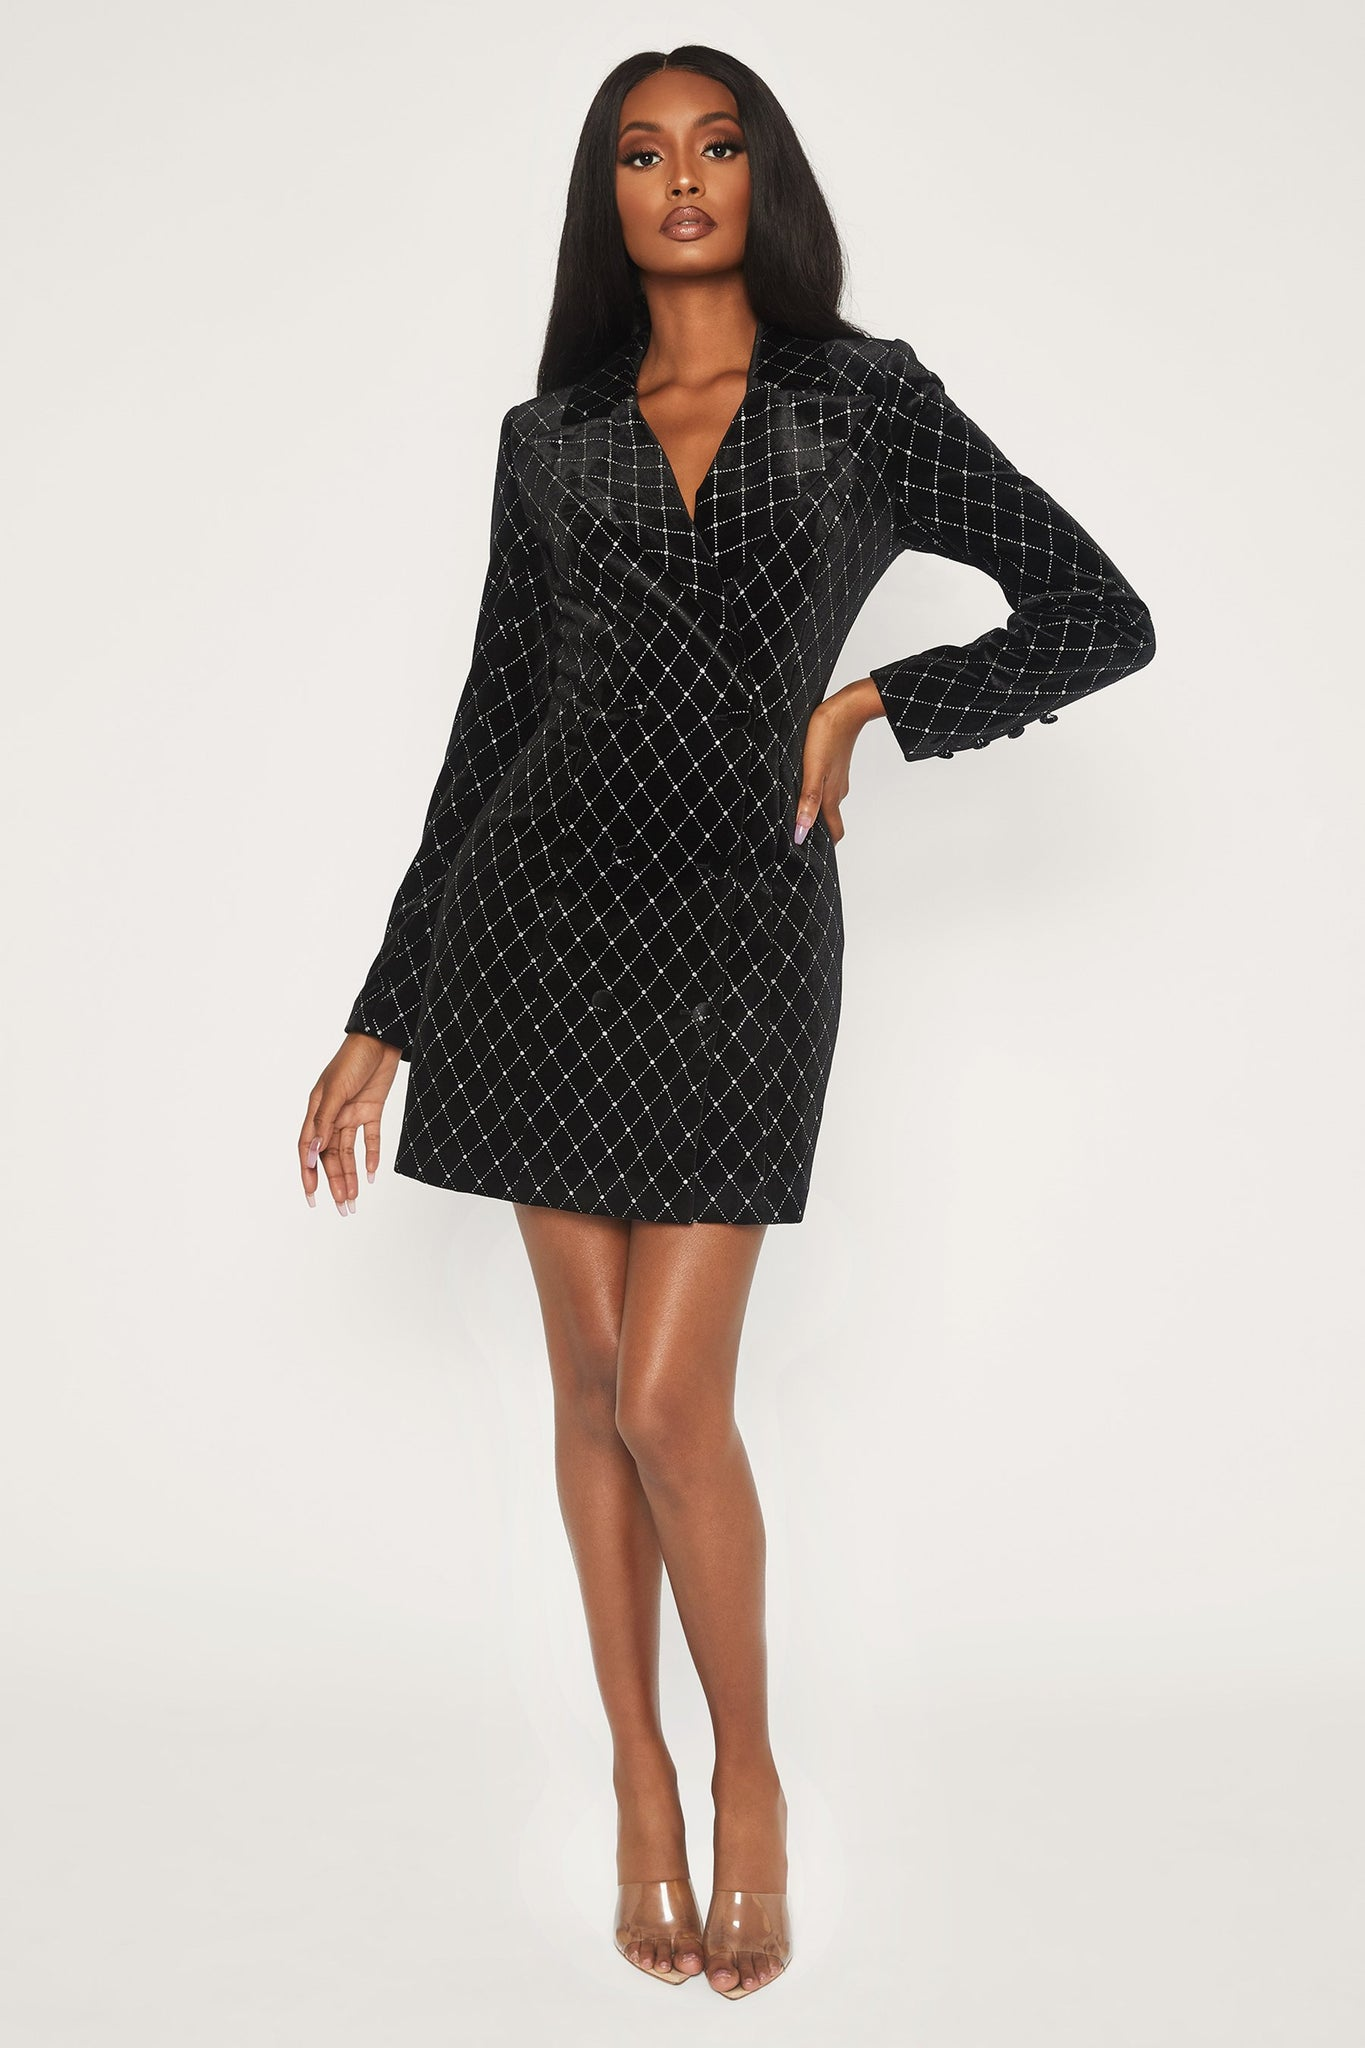 Lona Velvet Double Breasted Blazer Dress - Black - MESHKI